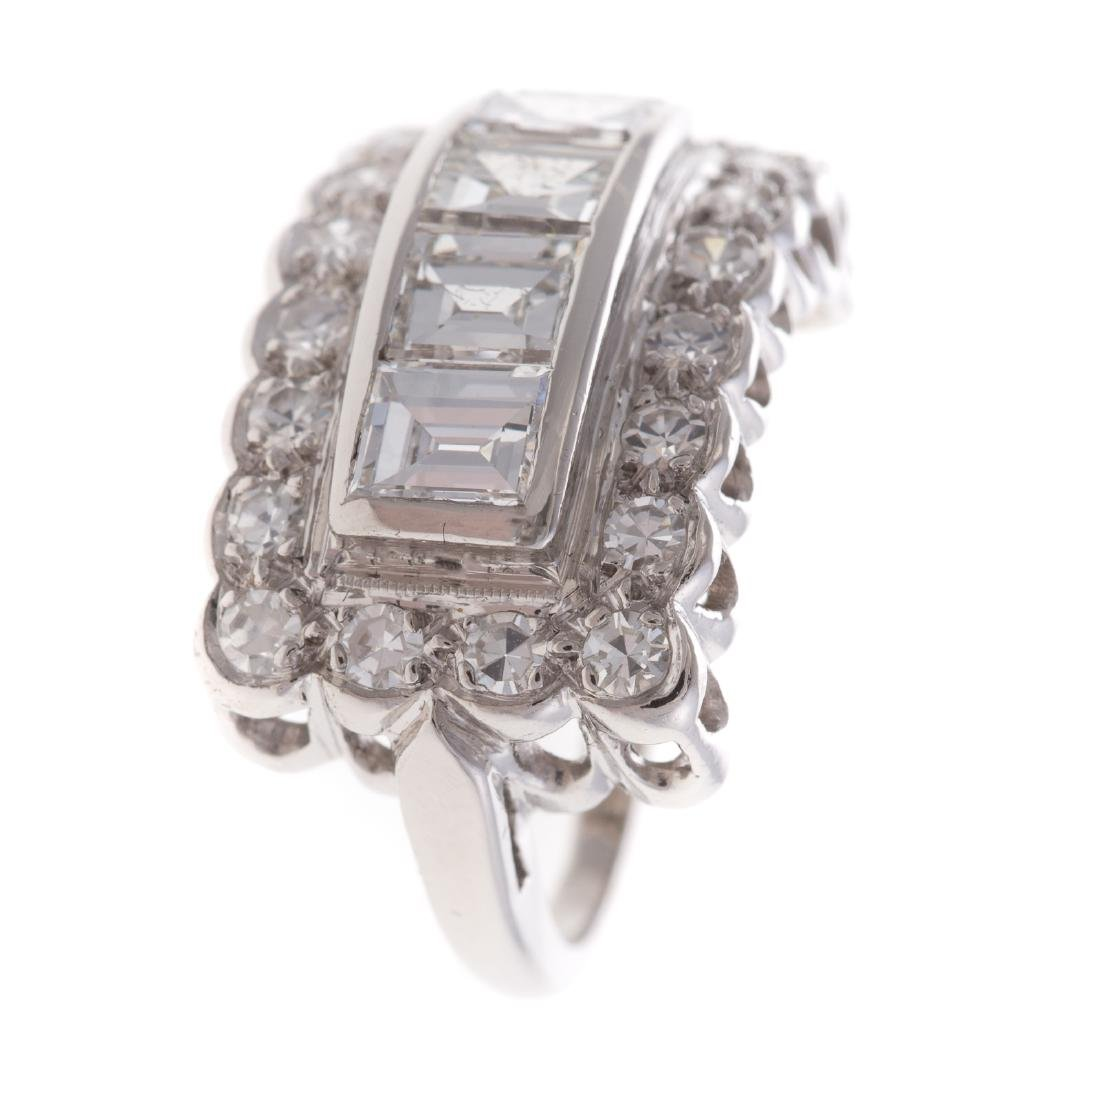 A Lady's Diamond Ring in Platinum - 2